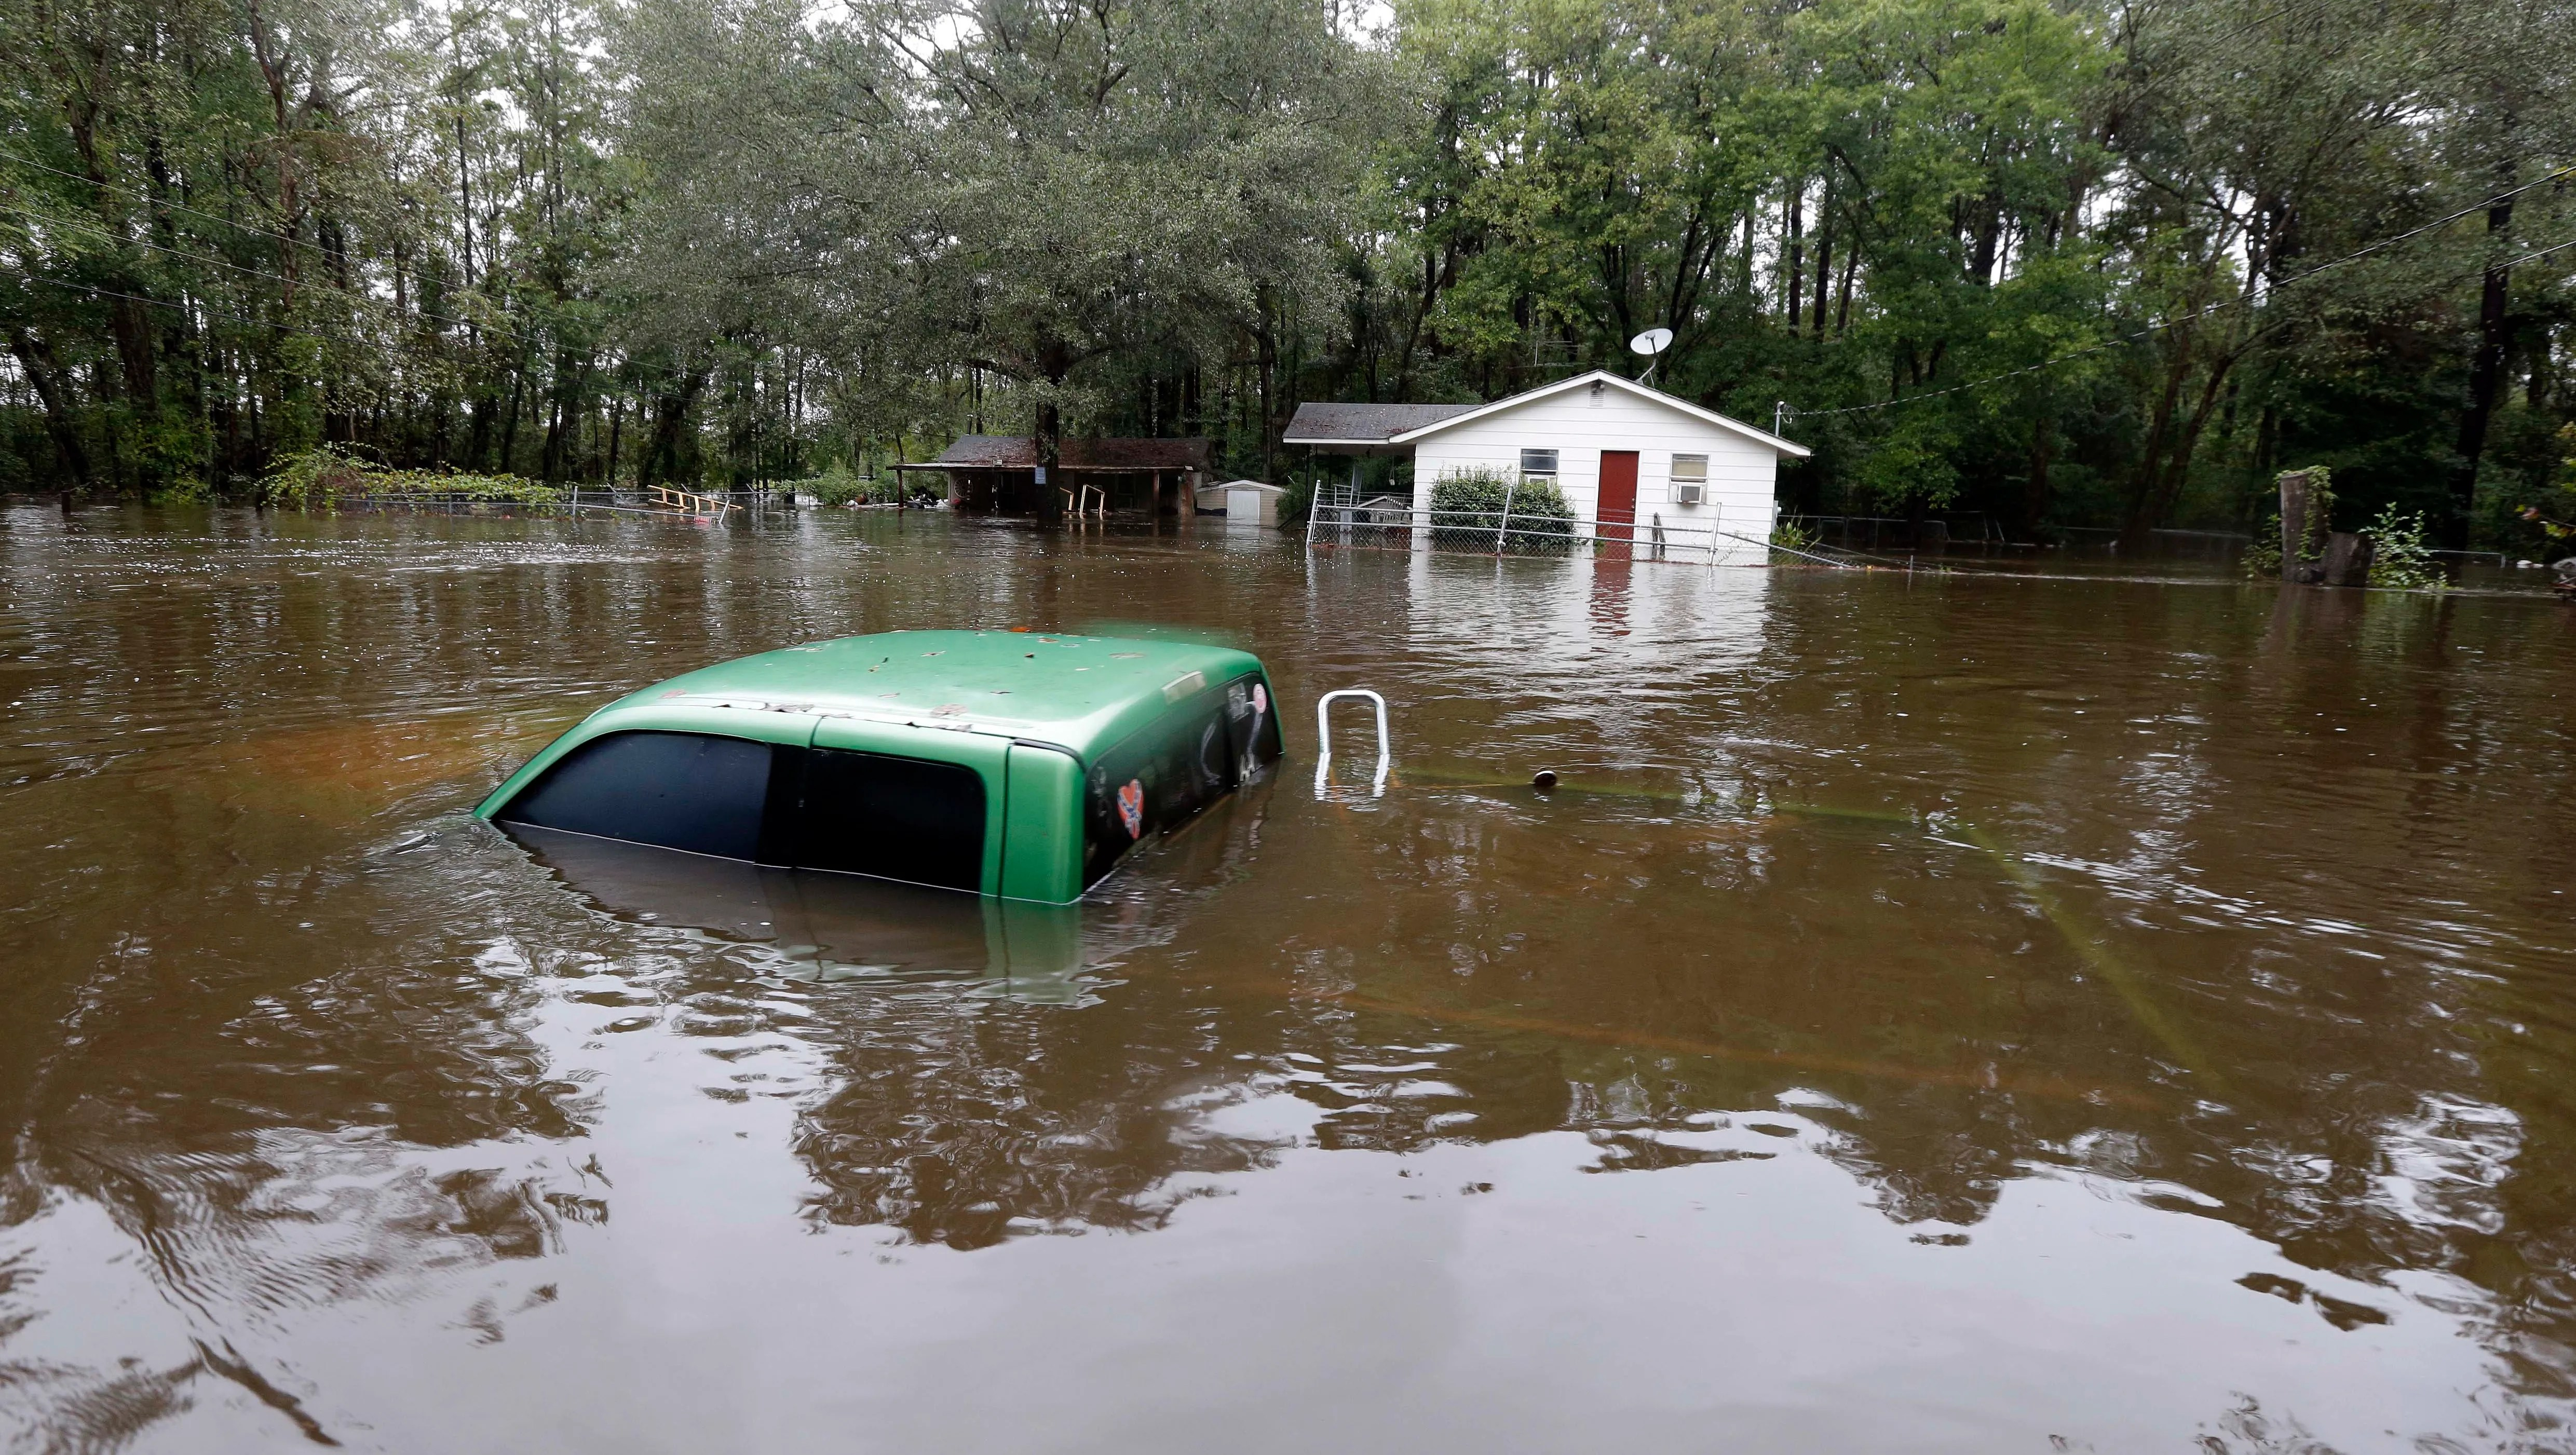 Death toll rises to 10 in unrelenting S.C. storm